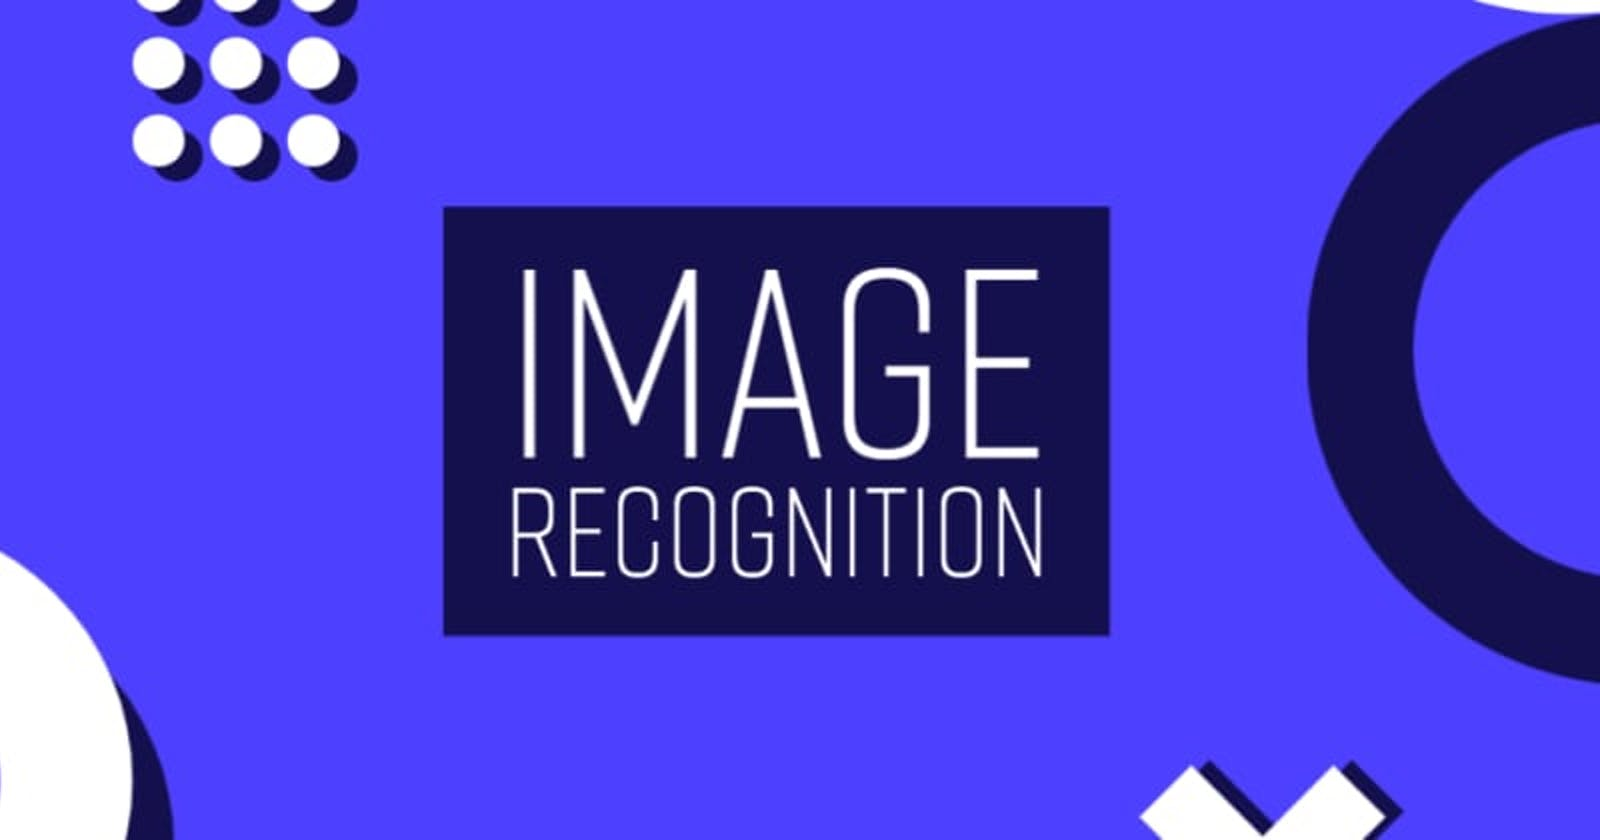 Image recognition with TensorFlow.js